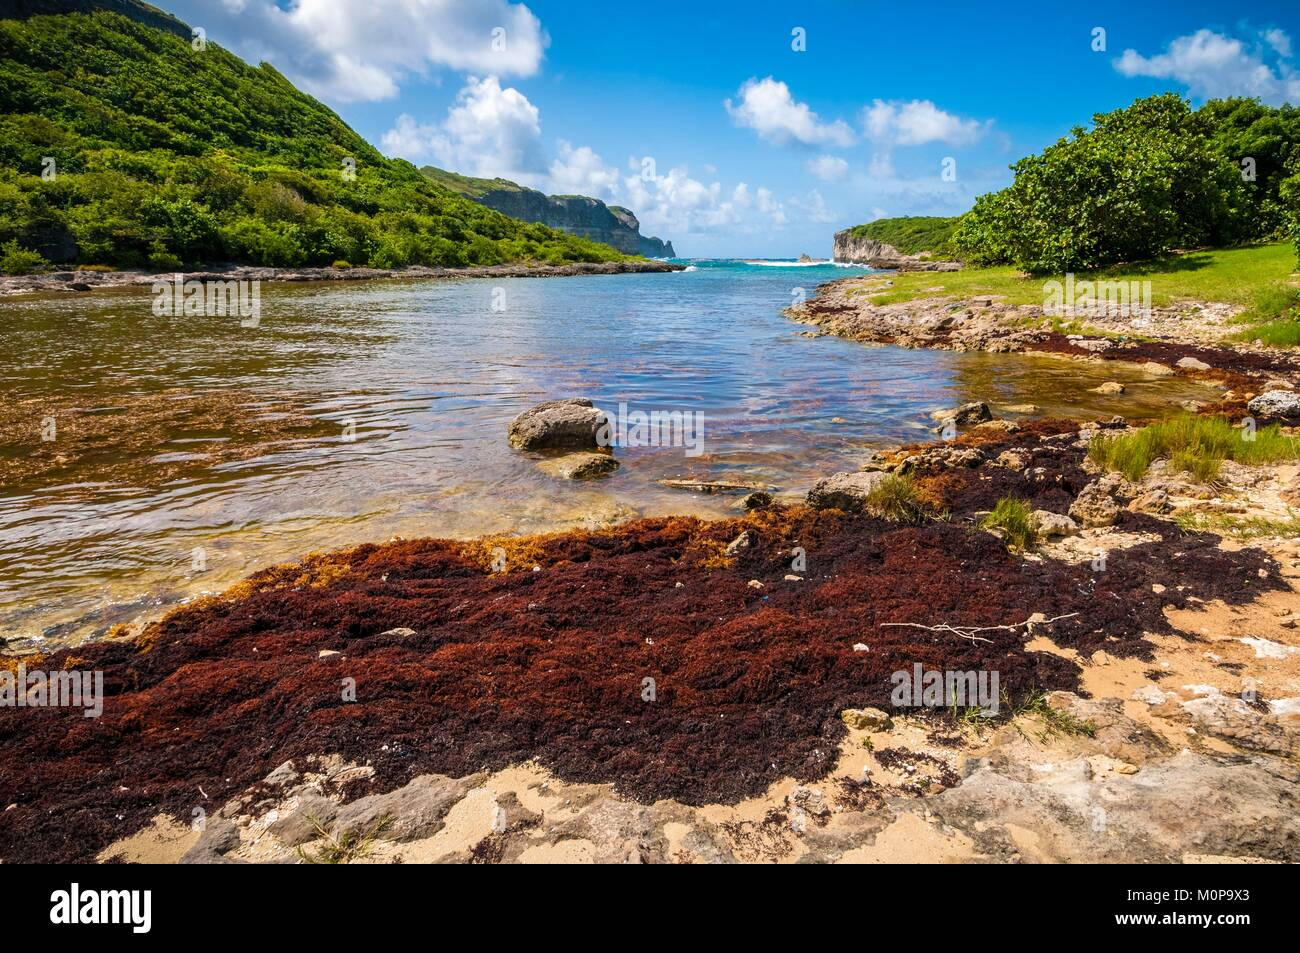 France,Caribbean,Lesser Antilles,Guadeloupe,Grande-Terre,Anse-Bertrand,natural landscape of the Porte d'Enfer - Stock Image